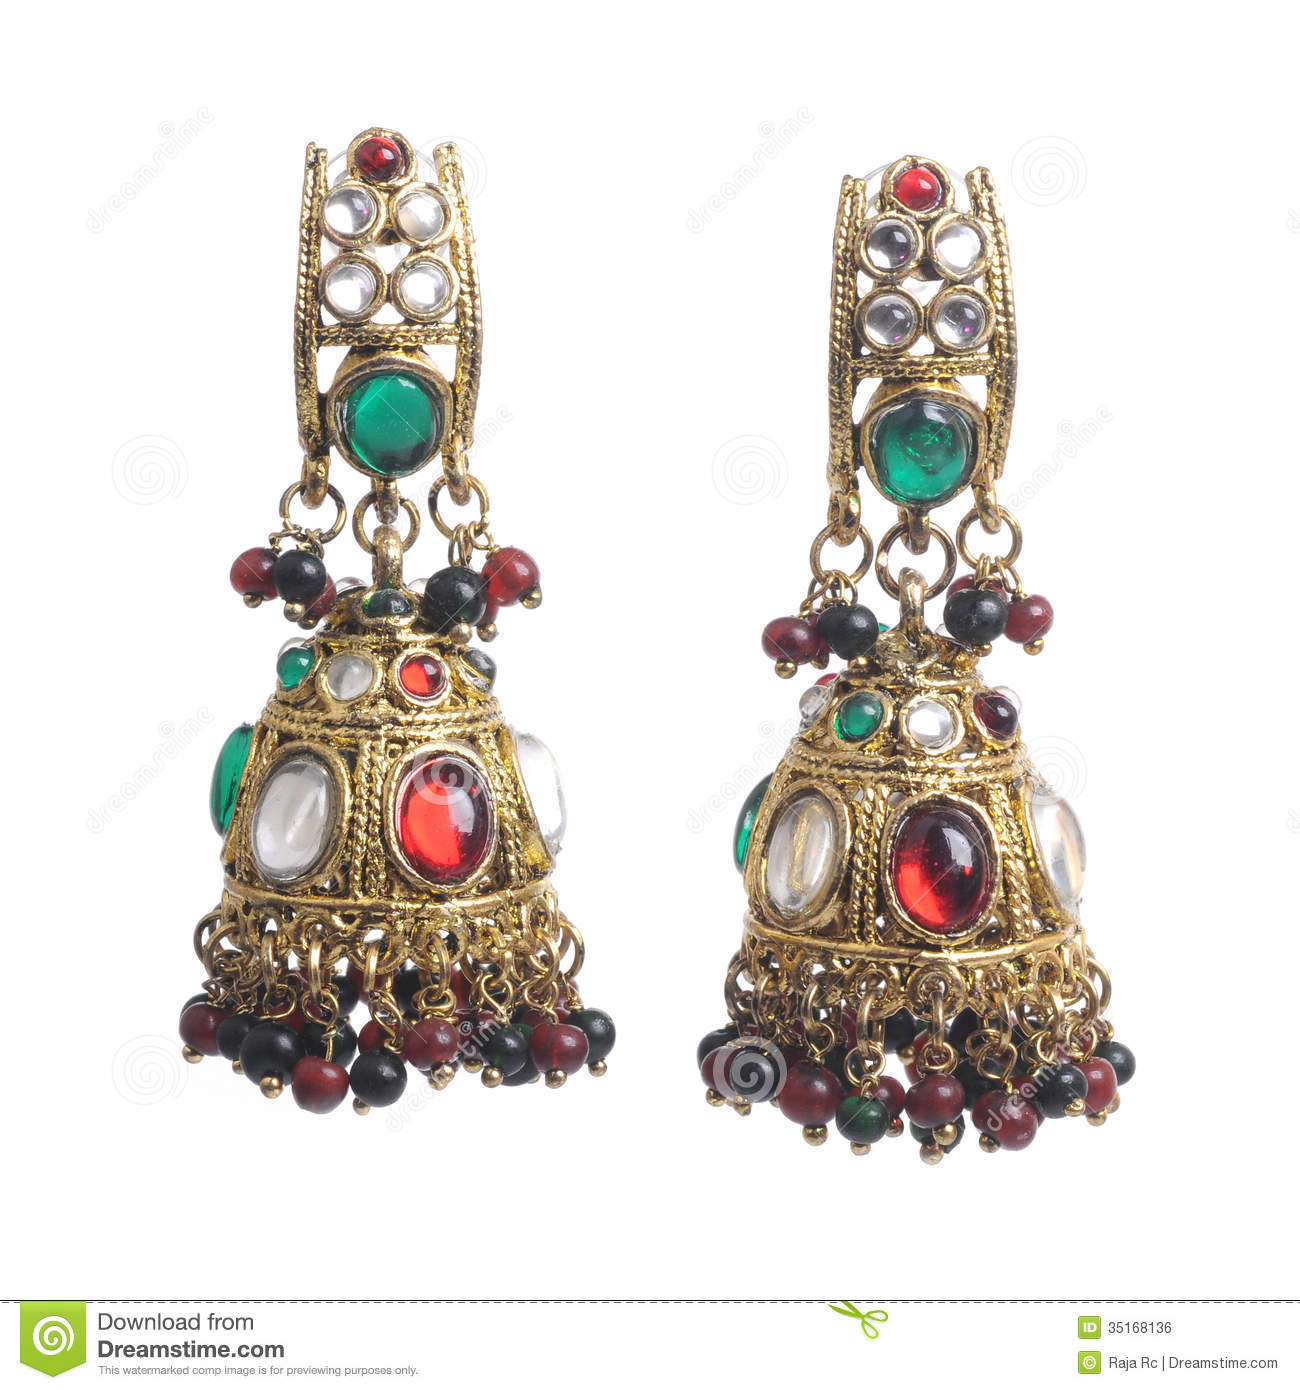 Fashion Earrings Royalty Free Stock Image  Image 35168136